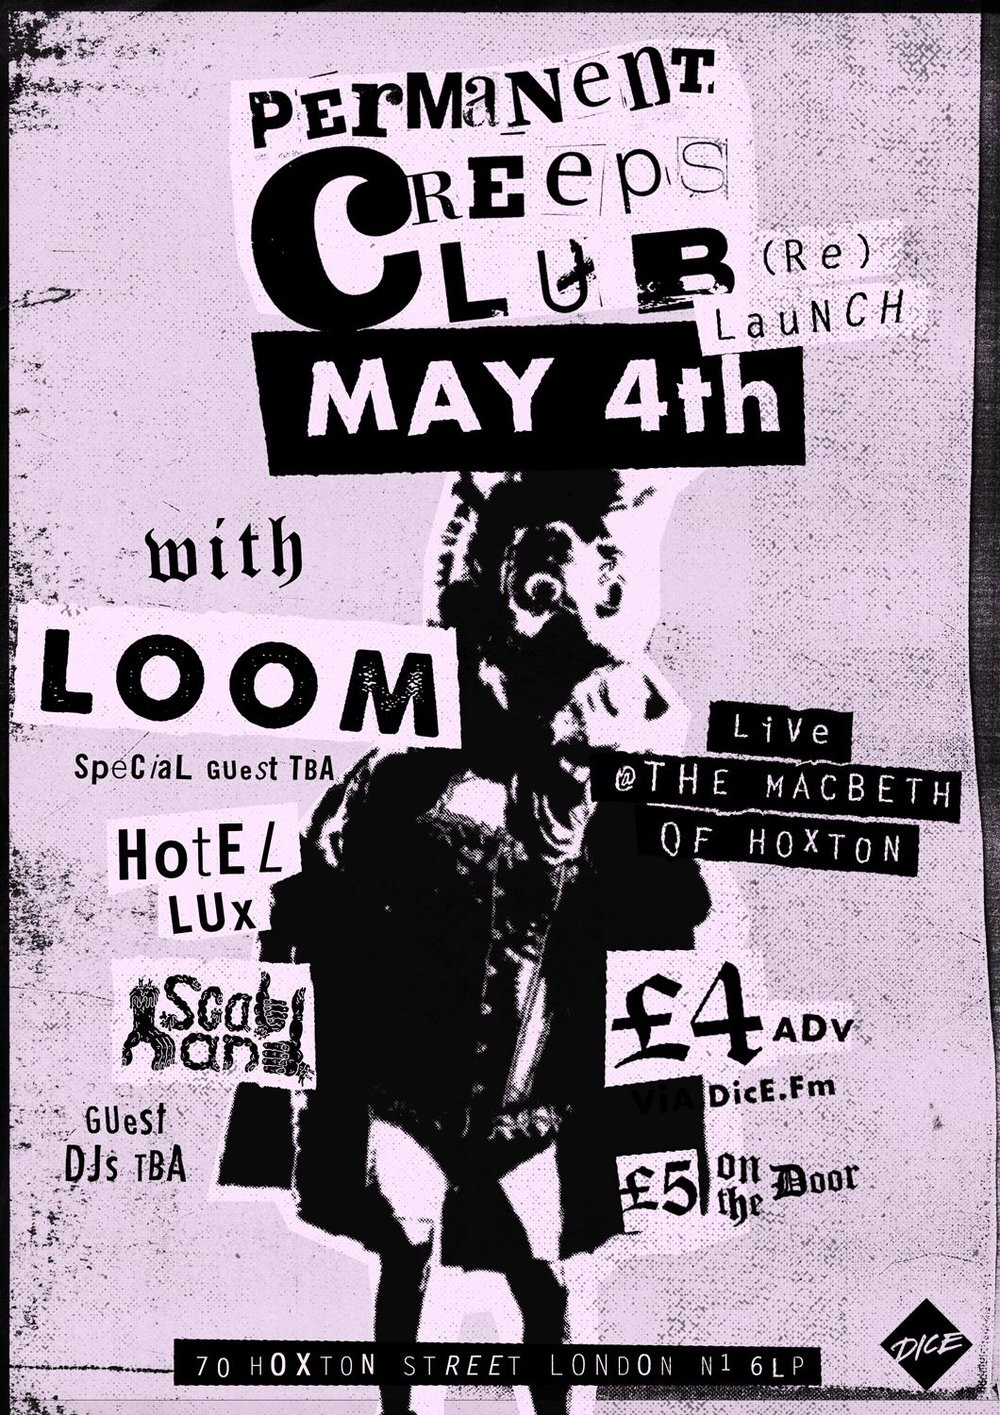 "Permanent Creeps Club is back! And we're delighted to announce the relaunch of our monthly club night at The Macbeth Of Hoxton, with a very special line up! LOOM Releasing two cassettes within their first year, LOOM received airplay from Zane Lowe and Daniel P Carter at Radio 1, along with continued coverage and Track of the Week in NME. Off the back of these singles, LOOM made the bill for the Rolling Stones Hyde Park show. And have now toured across the UK and Germany with artists including Frank Carter & The Rattlesnakes, Queen Kwong, and Turbowolf, along with a number of headline tours. After taking a step back from the initial Hype, LOOM release their debut album on May 19th! ""The debut album is the biggest statement a band makes. The songs we have written need to be presented exactly how we want them to be. We didn't want to be accused of contrived revivalism. We needed to find the right producers and the right label to understand where we were coming from. We now have that."" Hotel Lux ""Formed in early 2016, very little is known about the young 5 piece. However, in the short time they have been playing together they have already perked the ears of a select few in the know.  Matt Wilkinso over at Beats On was quick to champion them on his show and we're sure many more will quickly jump on the bandwagon once they hear them and catch a show."" RIP Records Scab Hand SCAB HAND are a new garage punk three piece emerging out of the Brighton underbelly. Coming together at the tail end of 2016 they have been brewing away in a back street sweatbox to forge a squelching fuzz pot of squealing aural mayhem. Mixing together the sordid concoction of former Love Buzzard (Fluffer / 1-2-3-4 Records) frontman and guitarist Kevin Lennon, former Eighties Matchbox B-Line Disaster and KRAK KRAK drummer Rob Ling and the deep rumblings of bassist Dan Stirrat to create the insatiable itch of Scab Hand. **** PLUS SPECIAL GUESTS TBA **** **** Guest DJ'S **** Doors @ 8PM"